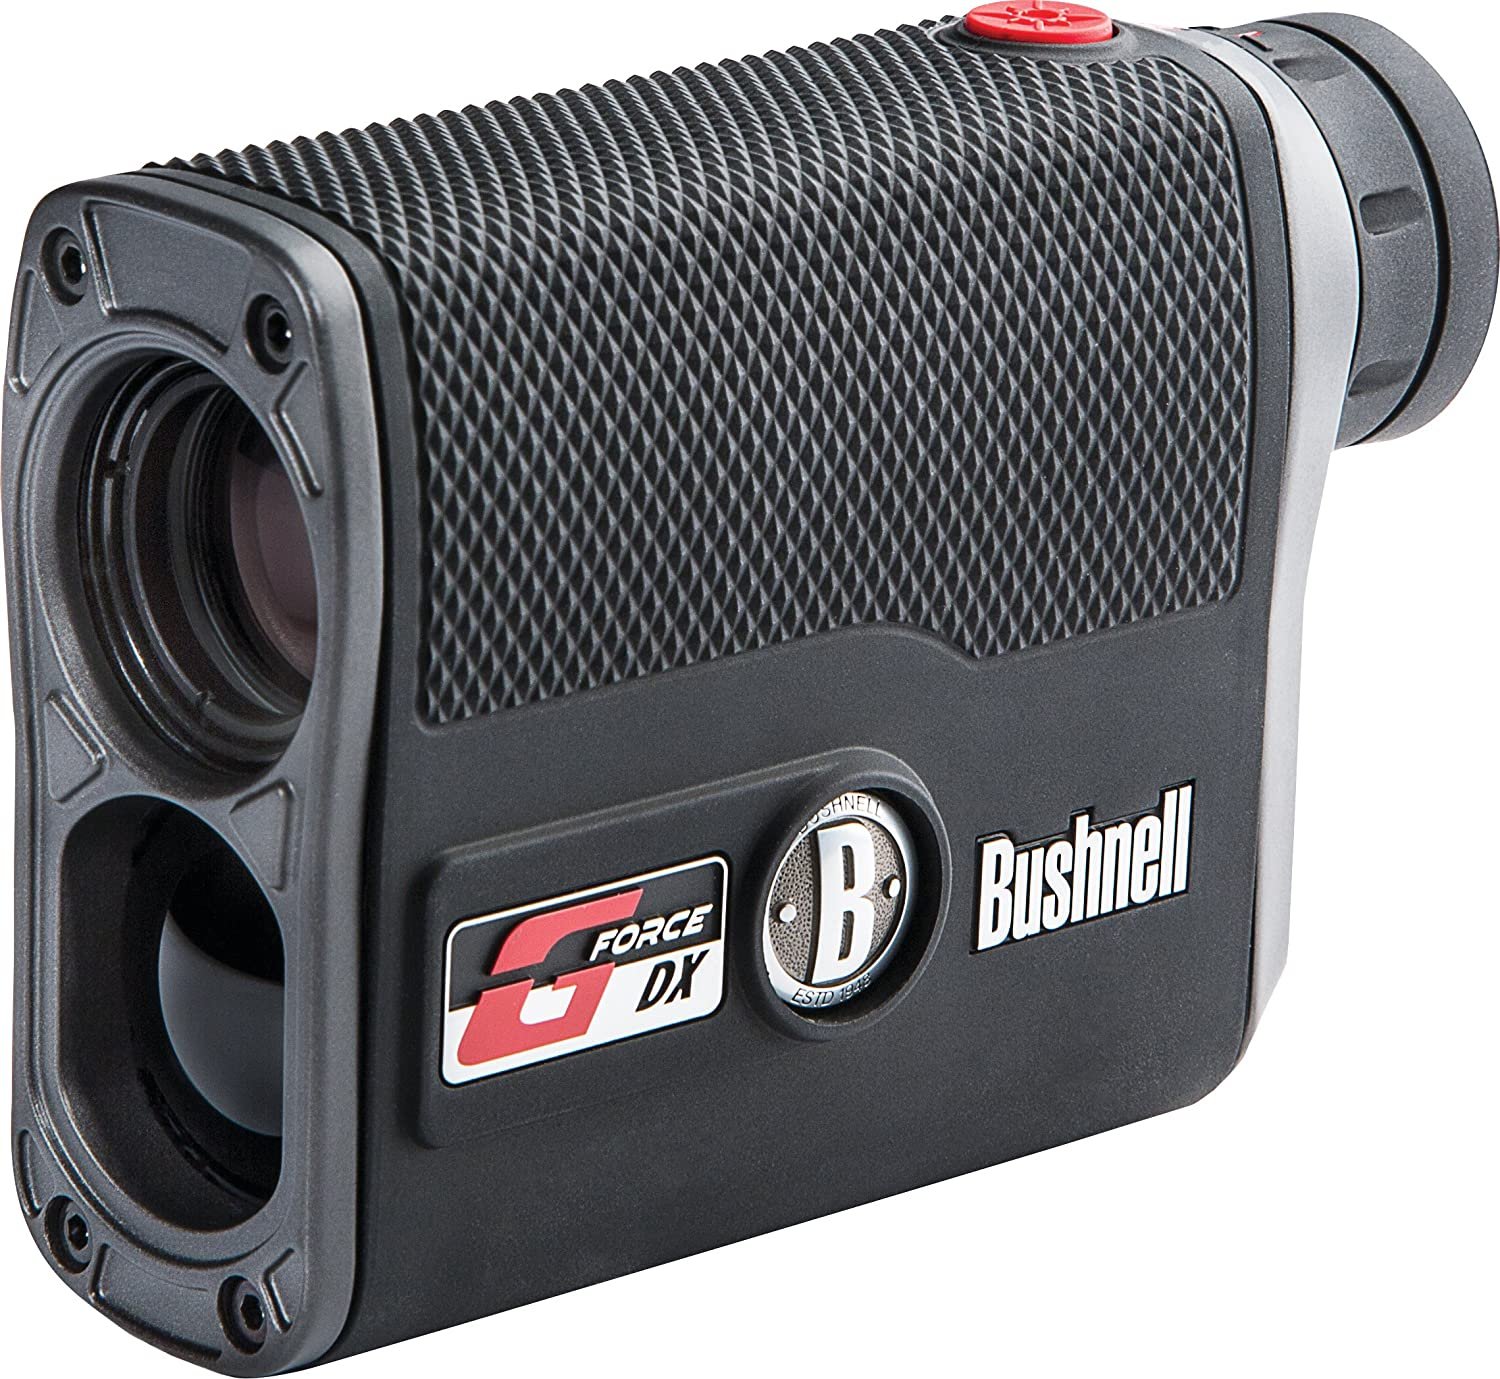 Bushnell G Force DX 6 x 21 mm - Telémetro láser de caza, color negro 202460